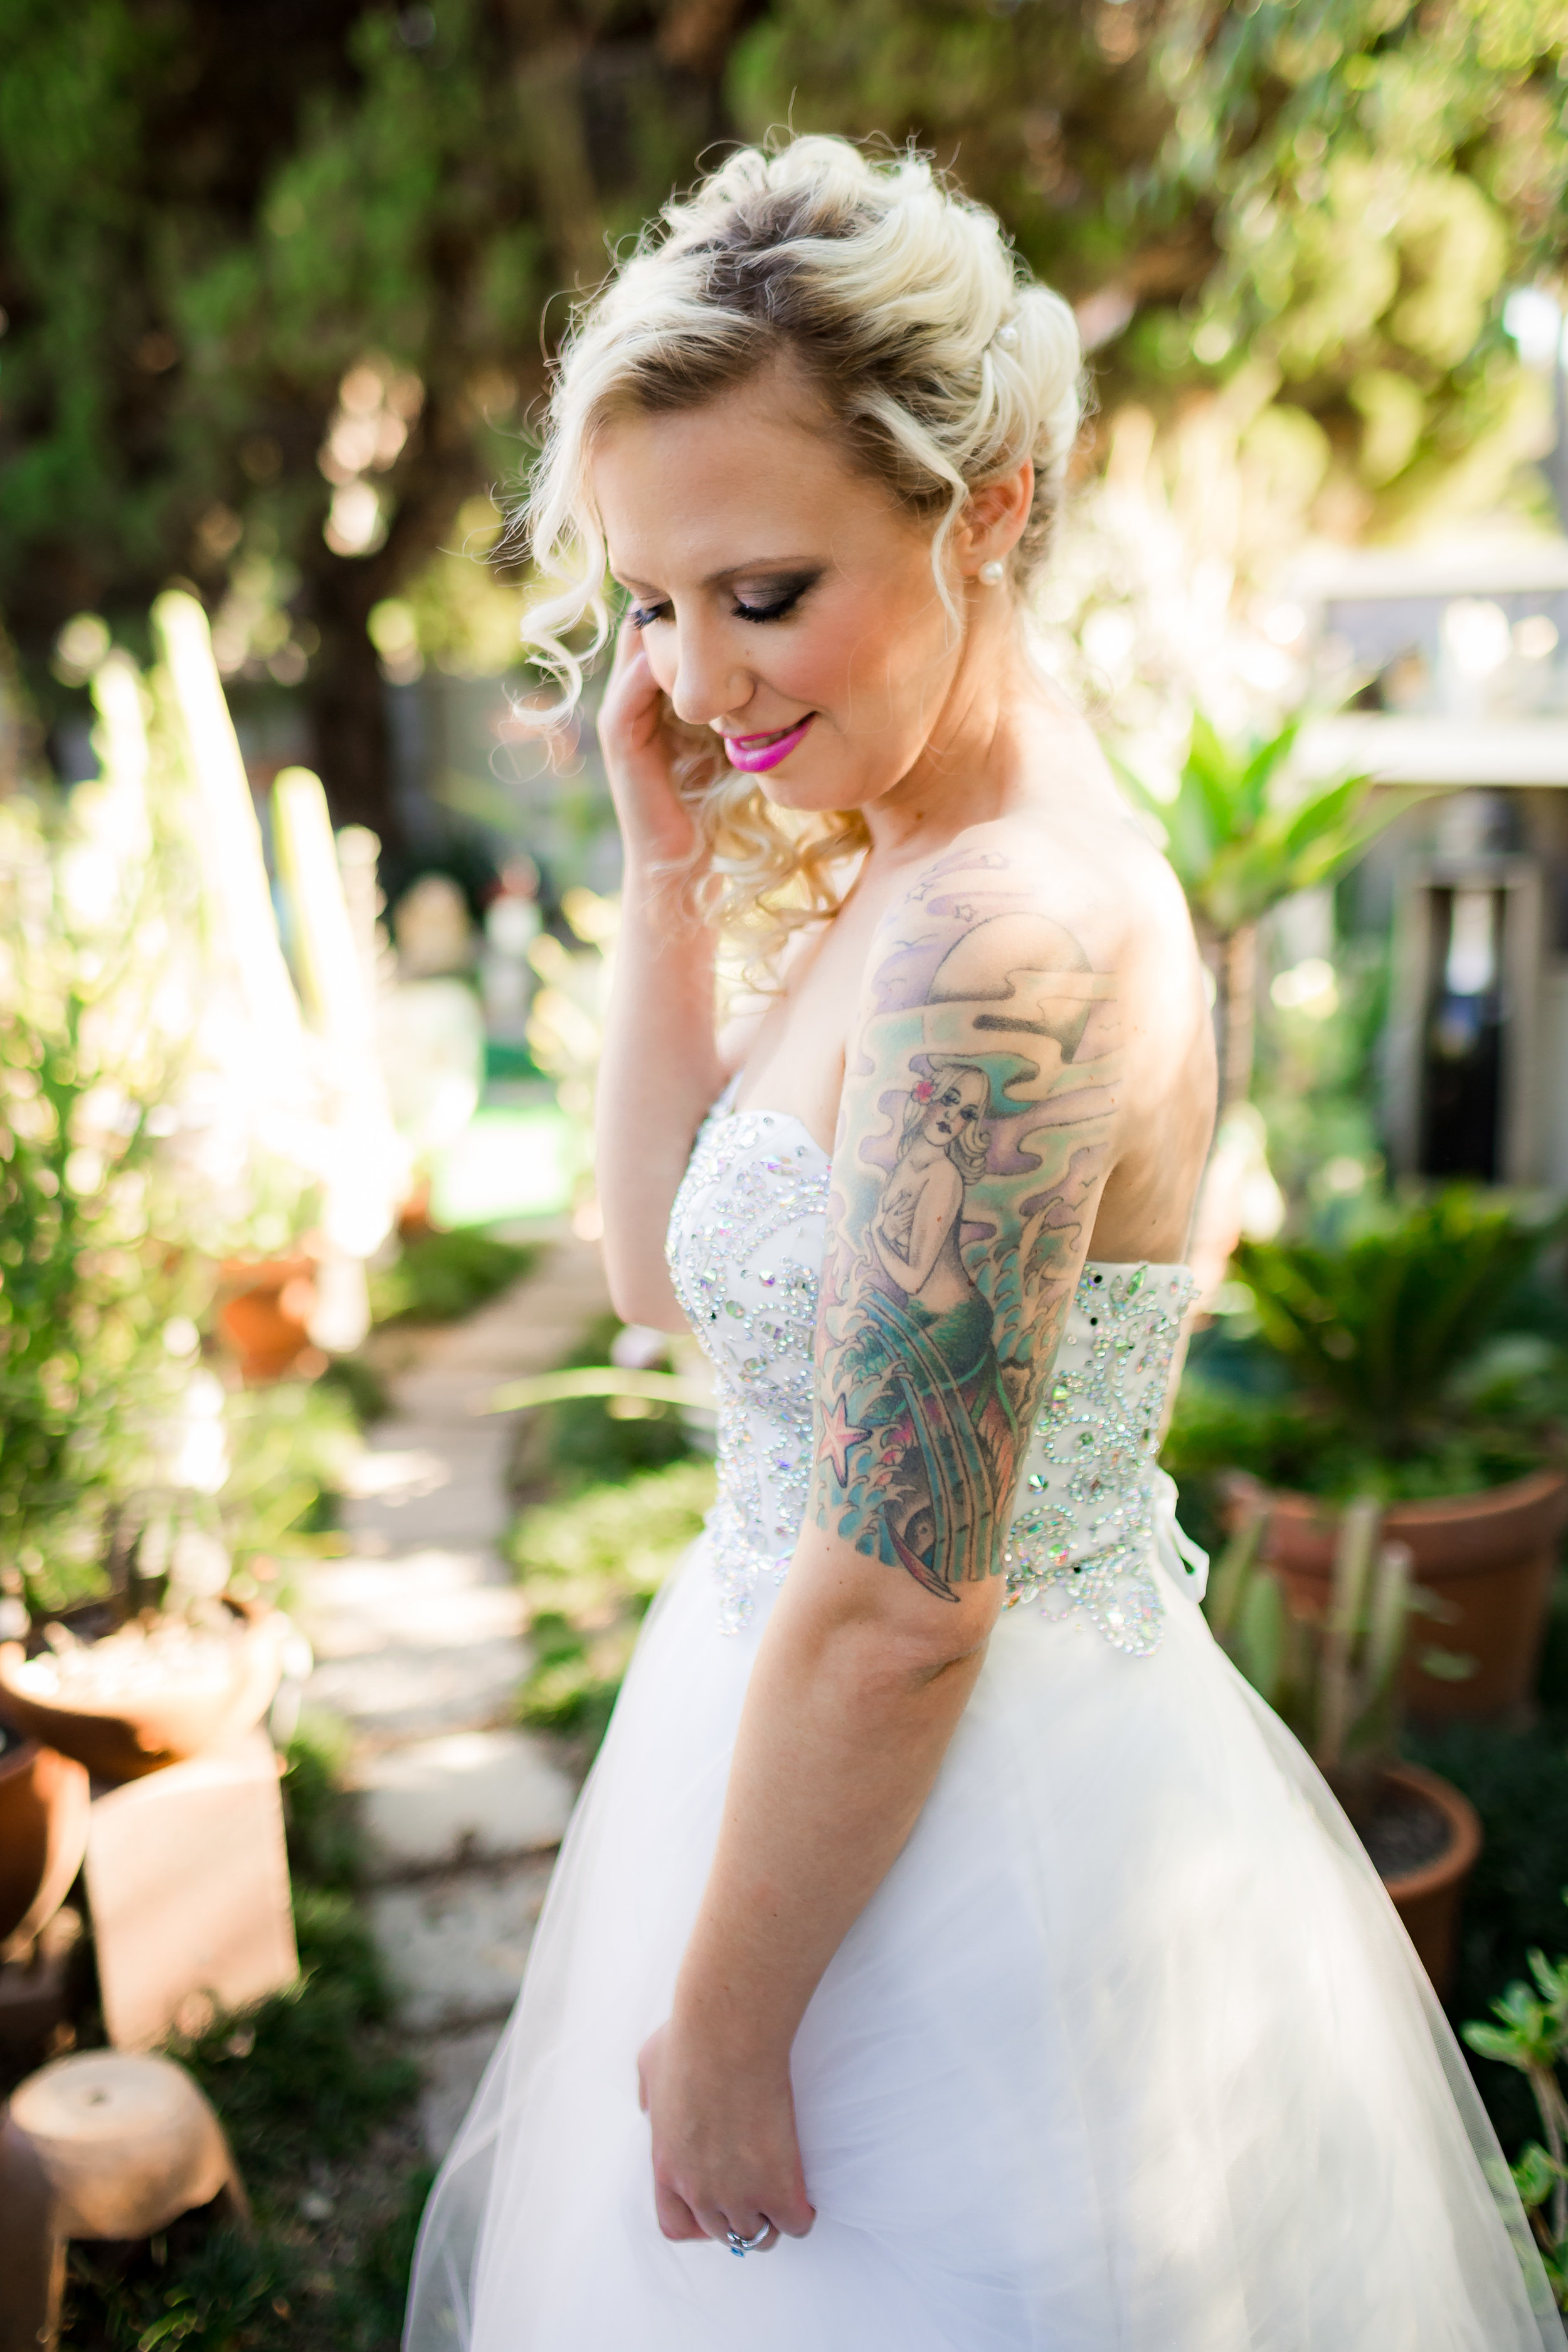 Edgy Bride with tattoos in her Wedding Dress